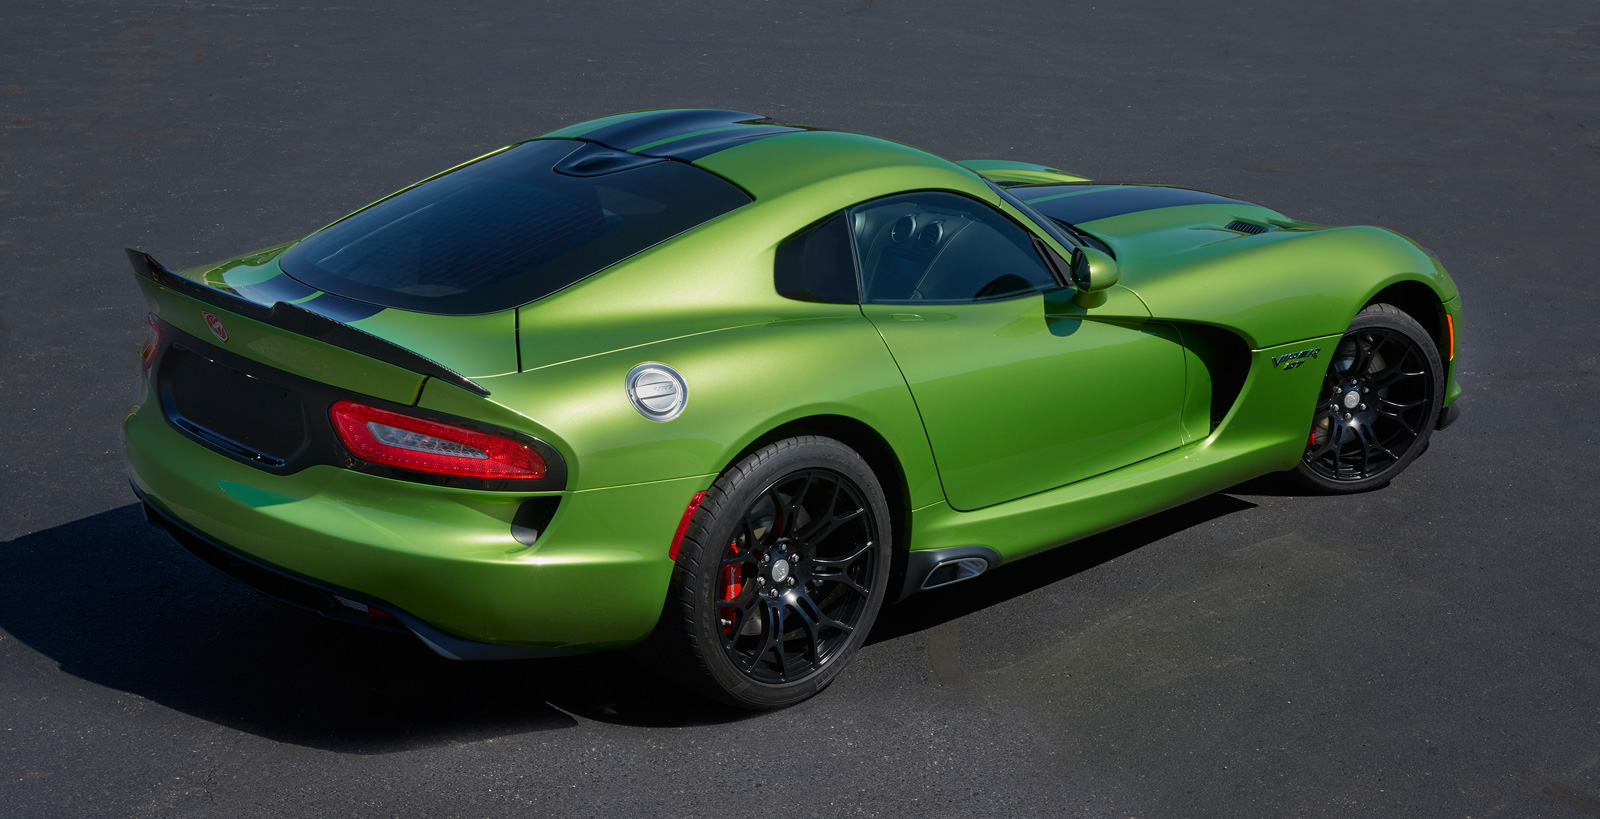 2017 dodge viper snakeskin edition gtc was inspired by the original 2010 snakeskin acr with its